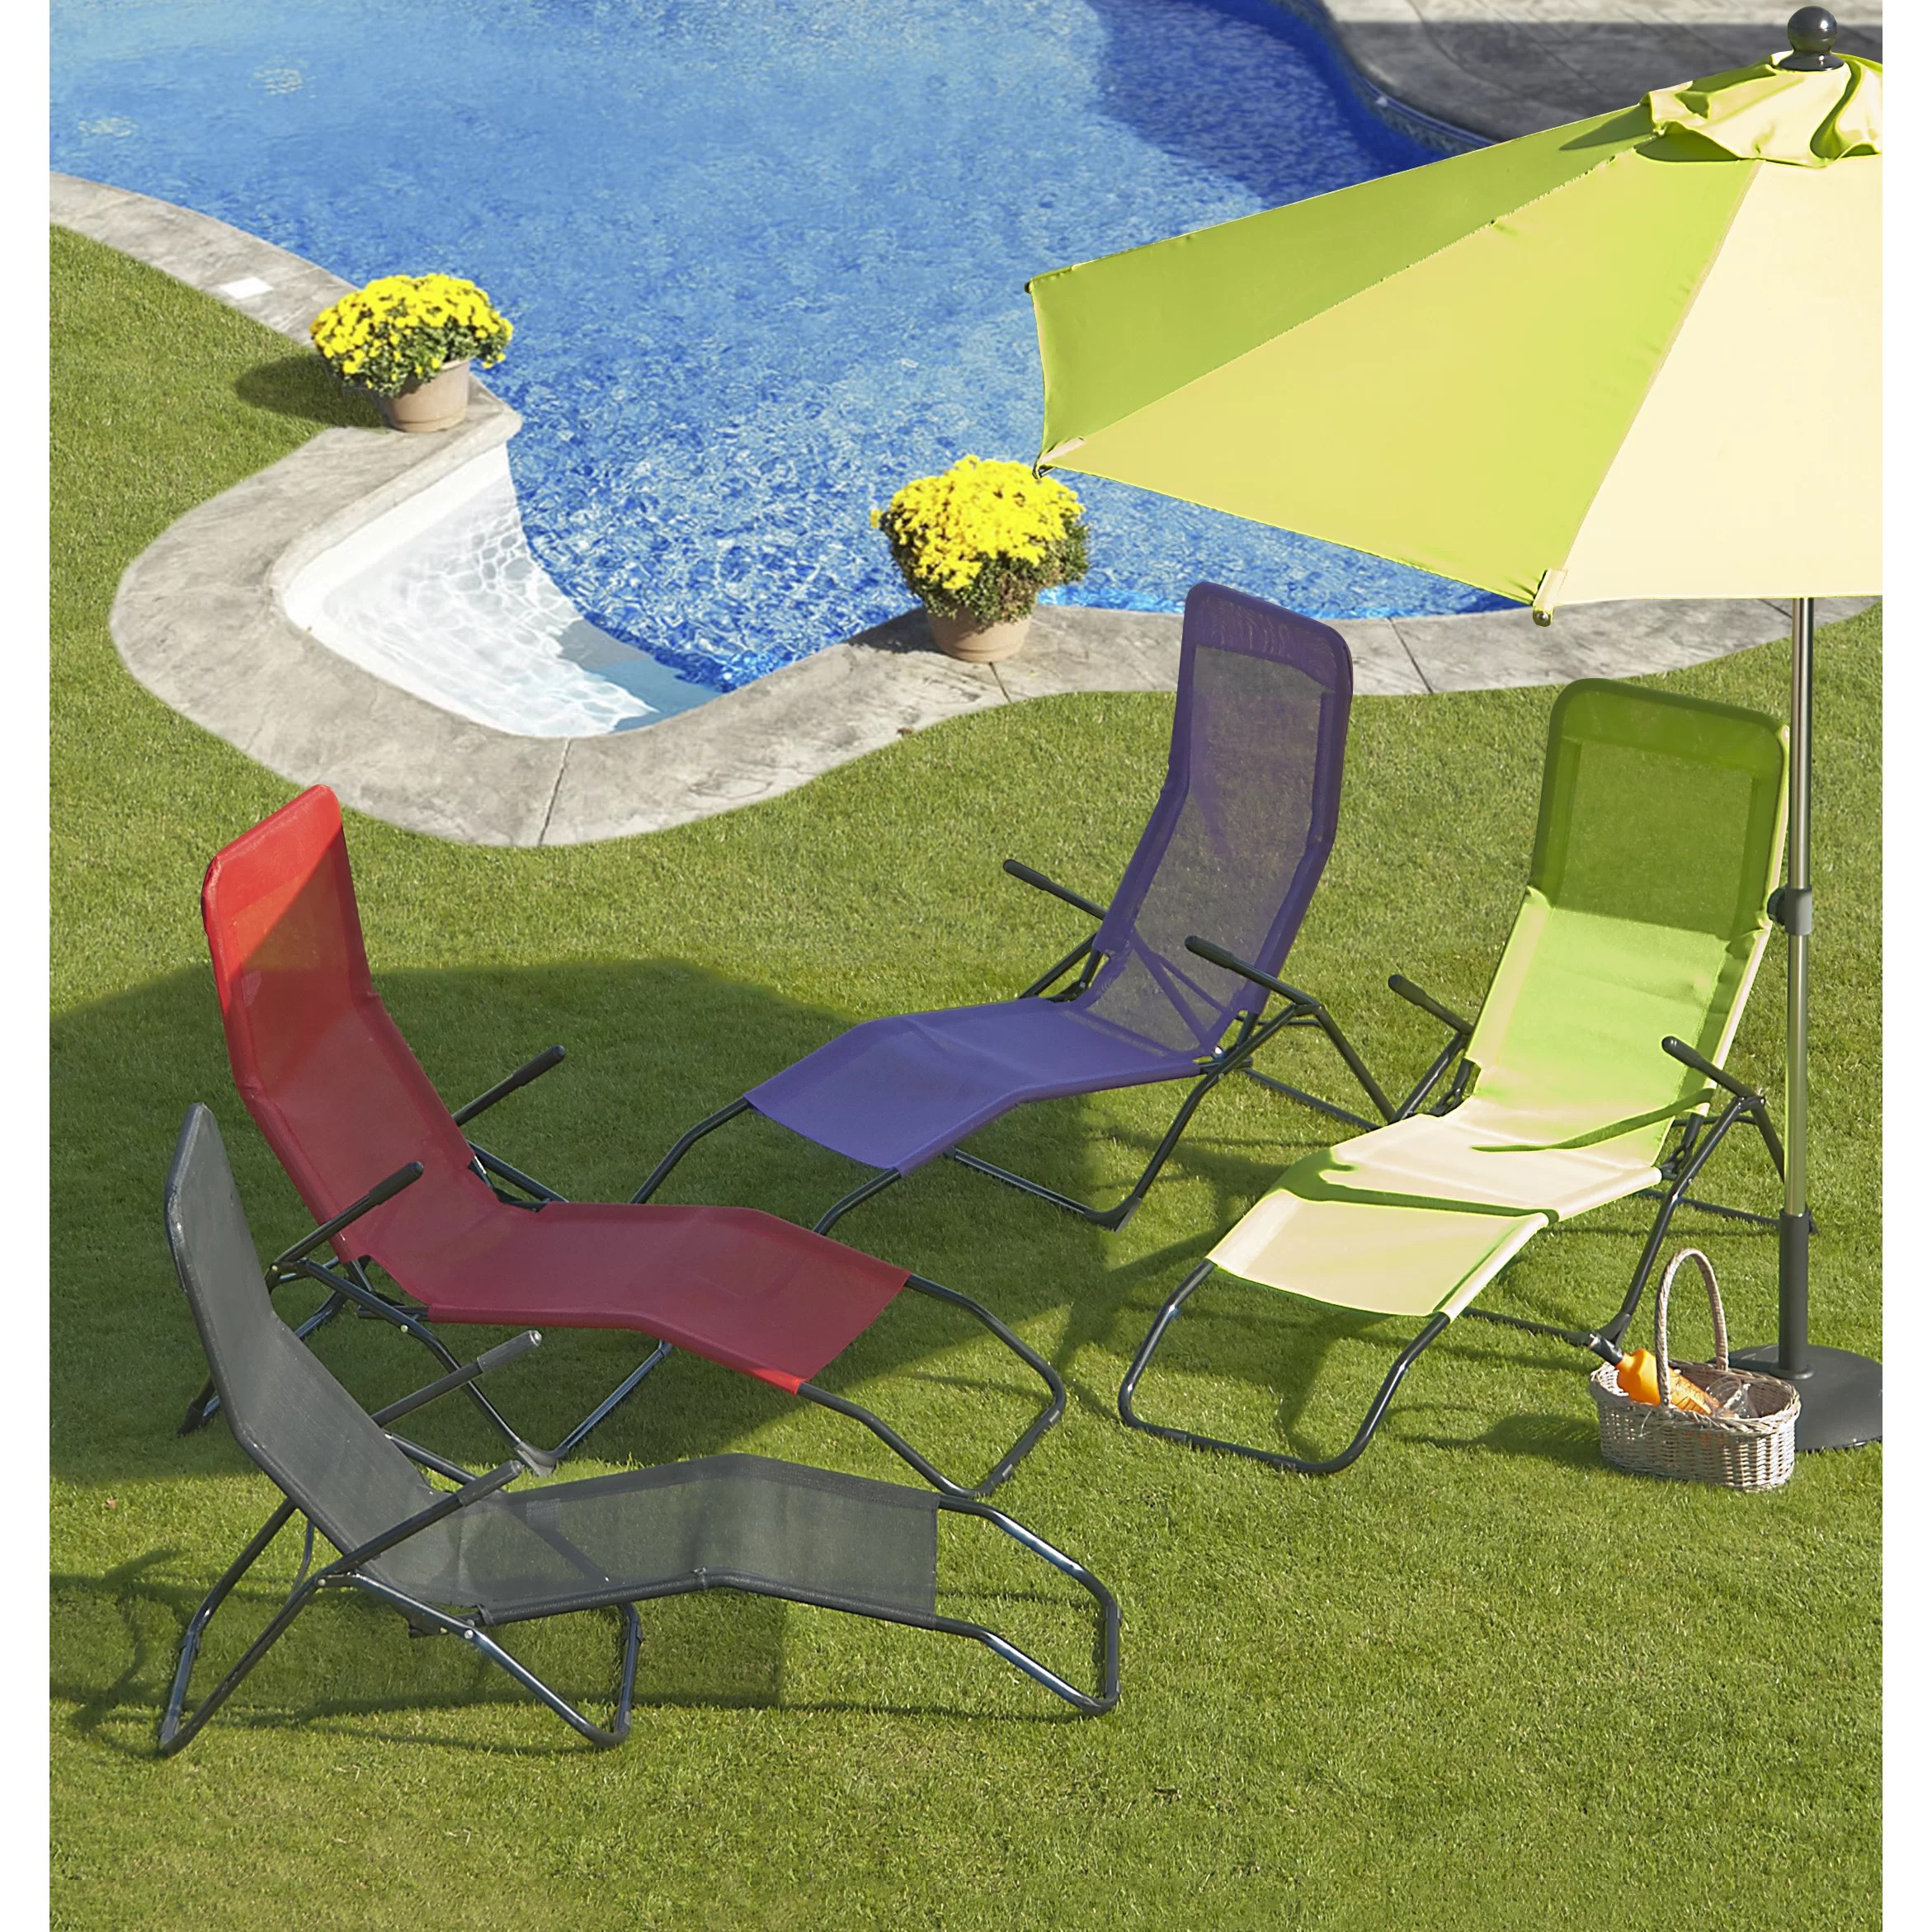 SunTime Outdoor Living Siesta Zero Gravity Chair & Reviews ... on Suntime Outdoor Living  id=89905